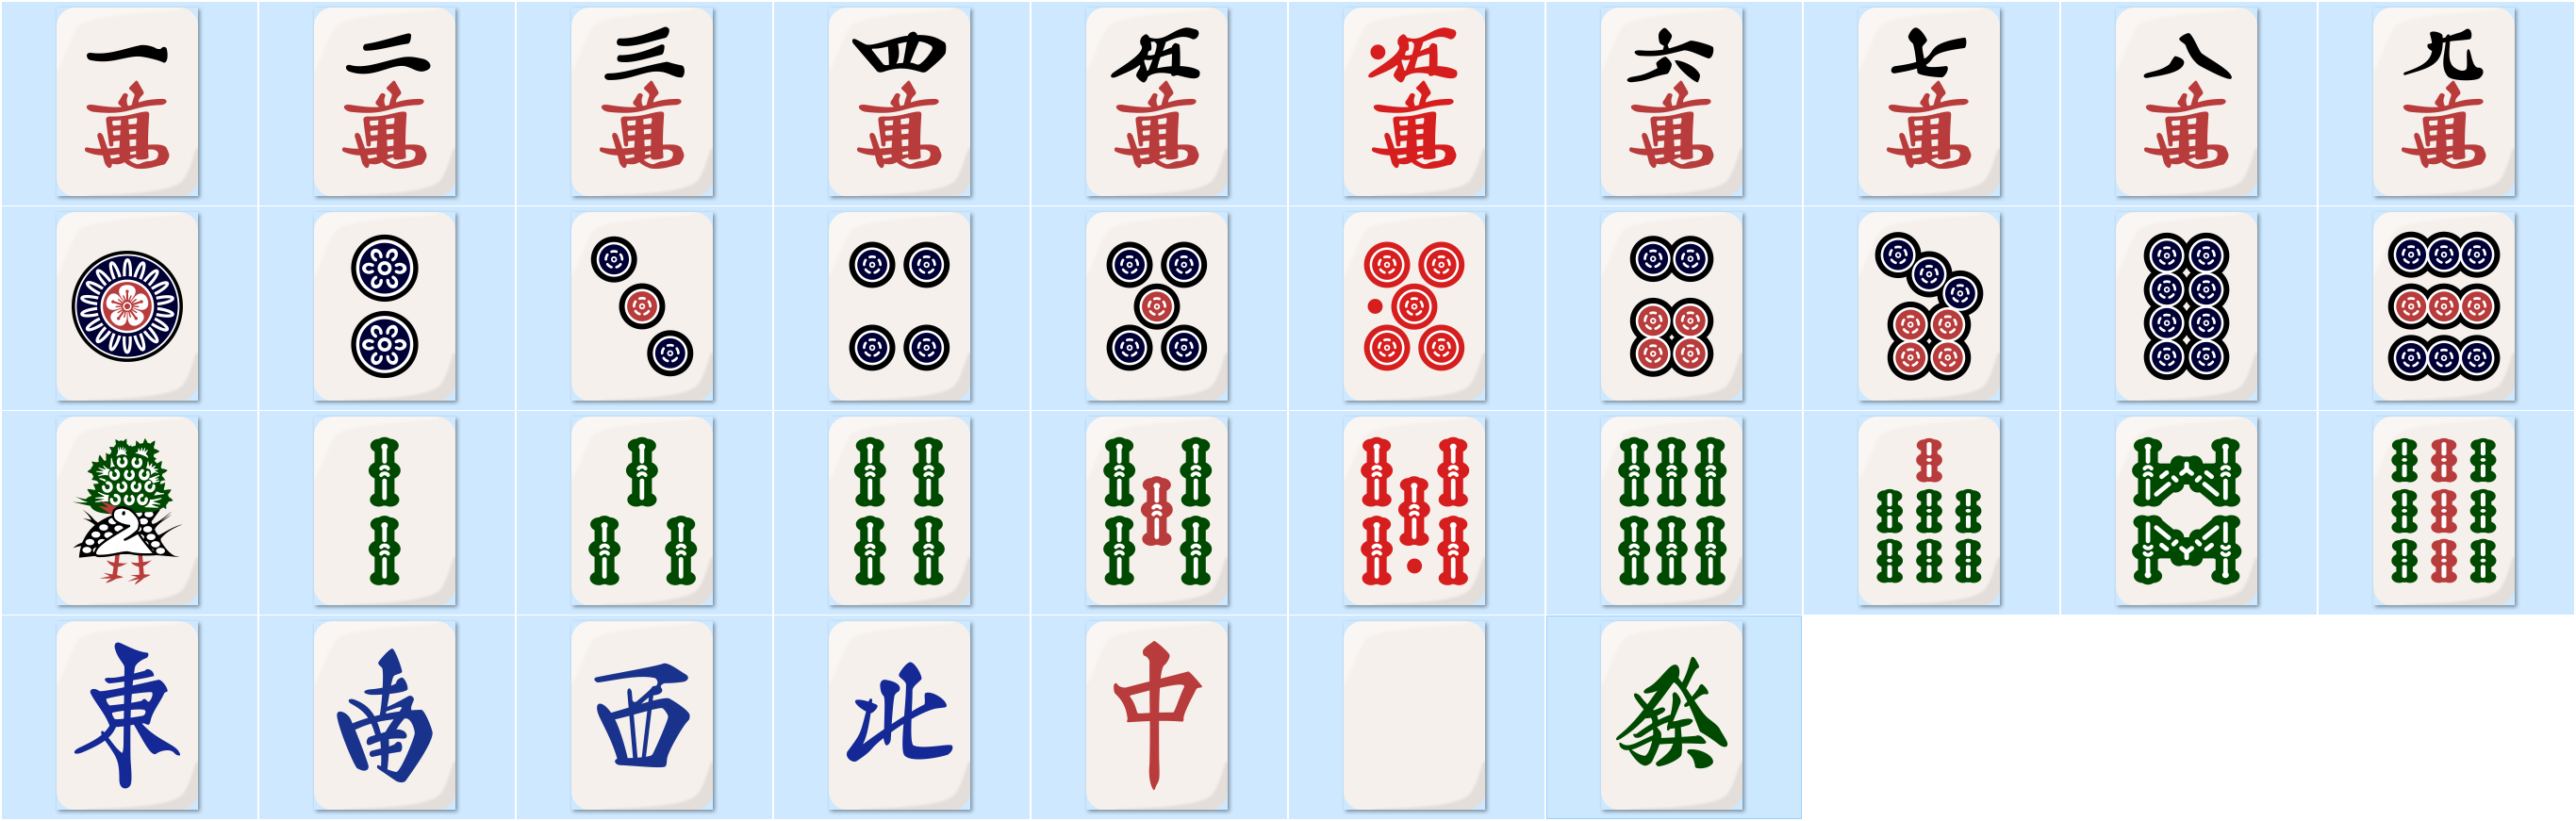 This Repository Contains Vector Graphics And Png Exports Of Riichi Mahjong Tiles The Are Available In Regular Black Variants